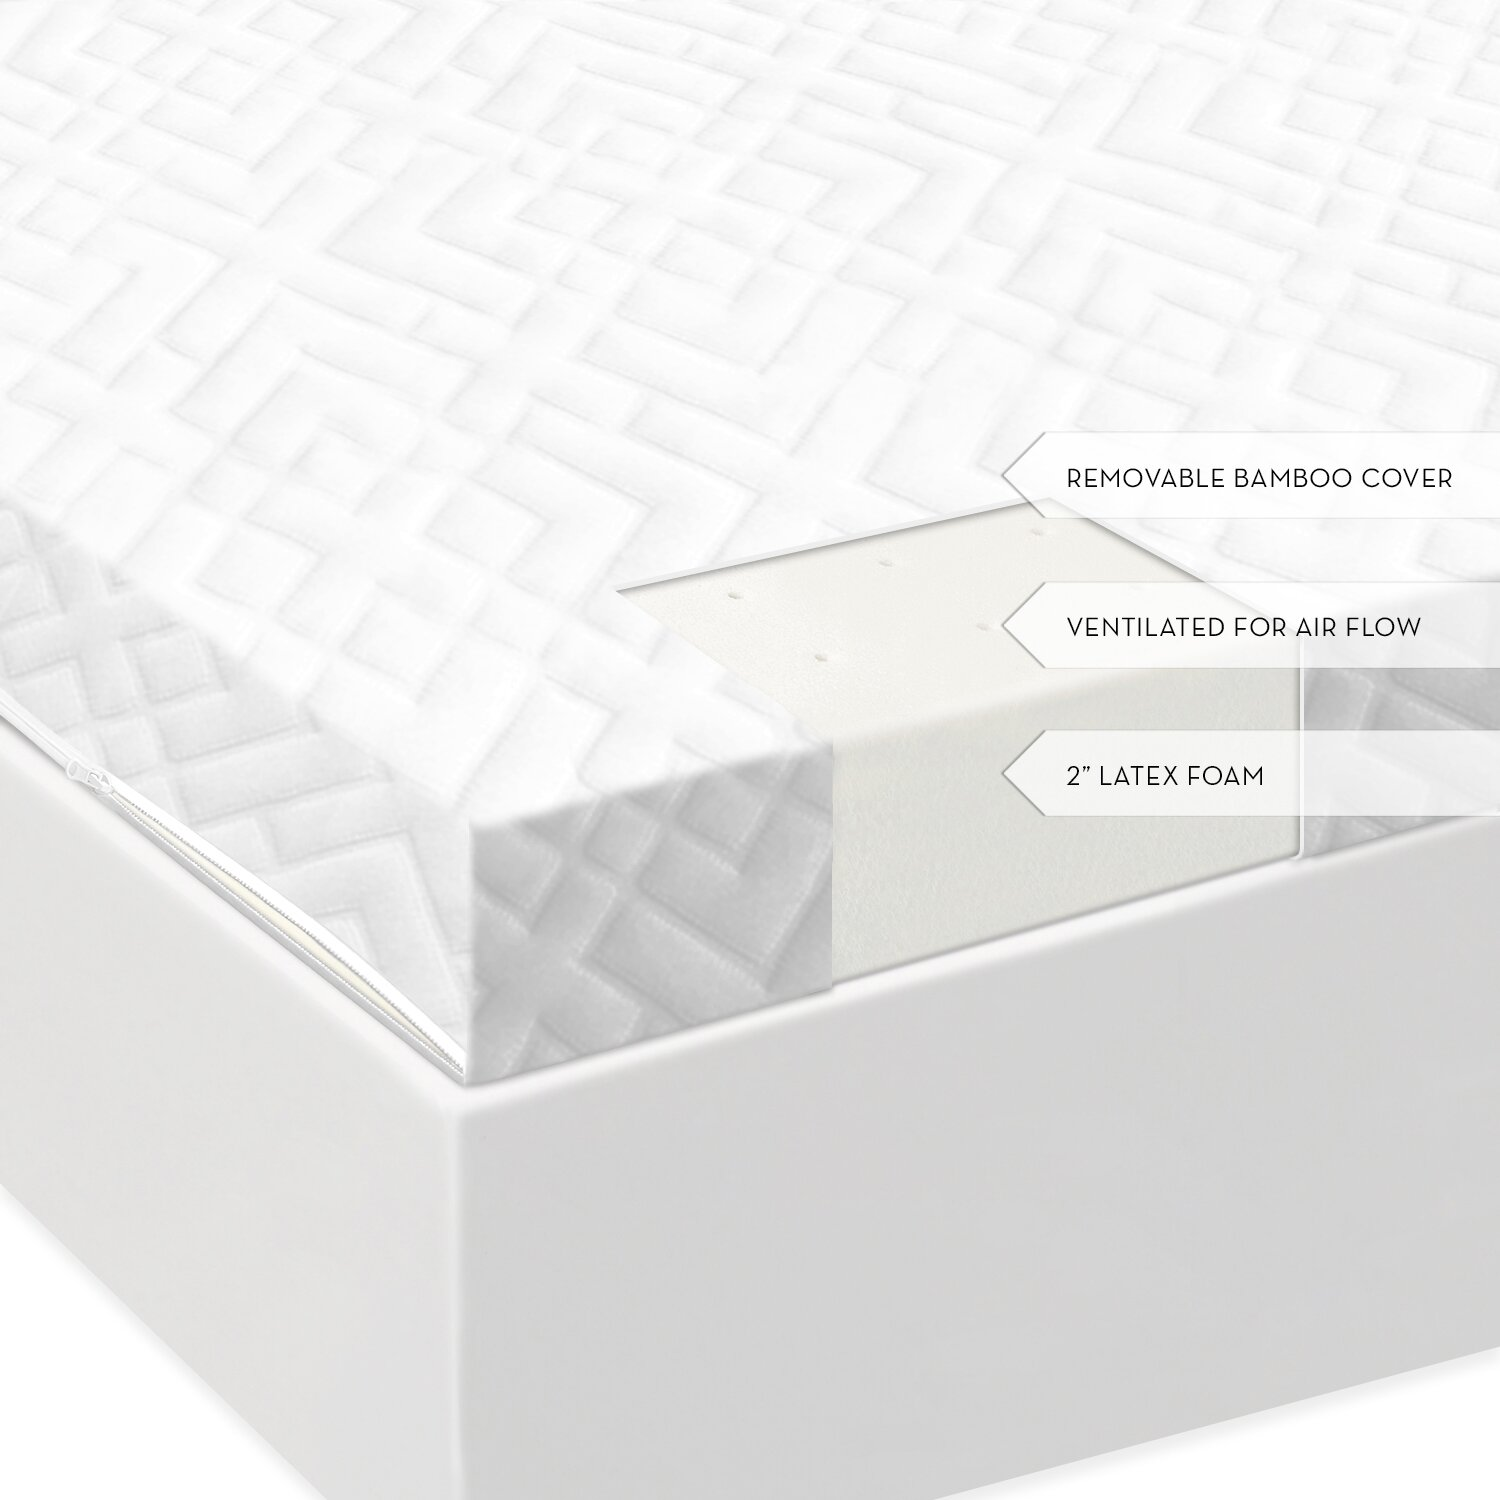 Malouf 2 Latex Foam Mattress Topper Reviews Wayfair